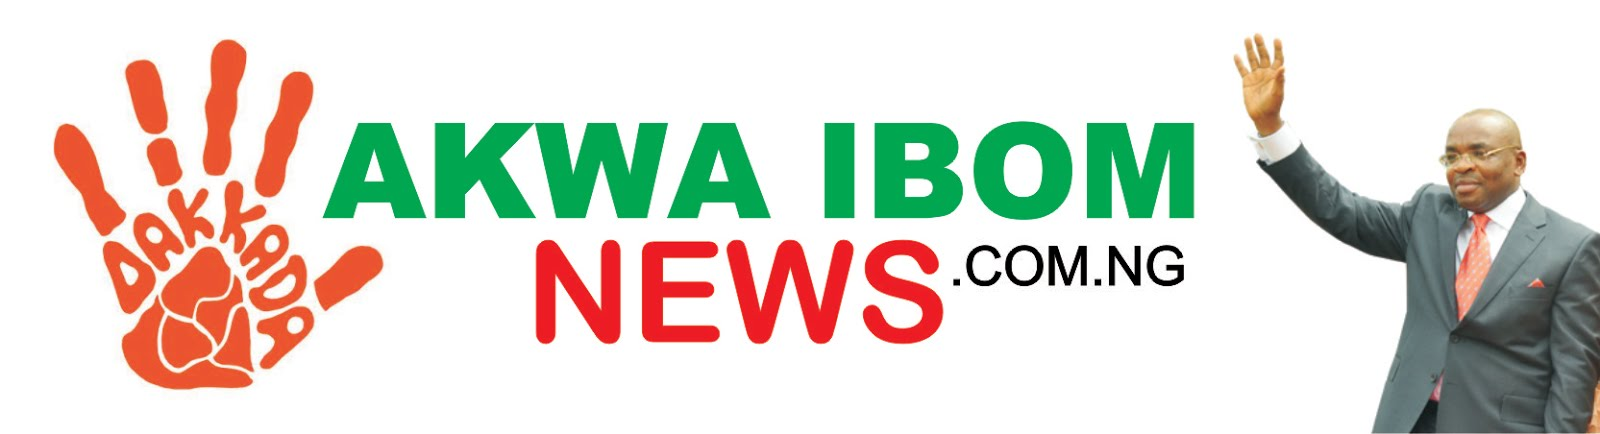 Akwa Ibom News Online Portal | Latest Akwa Ibom News